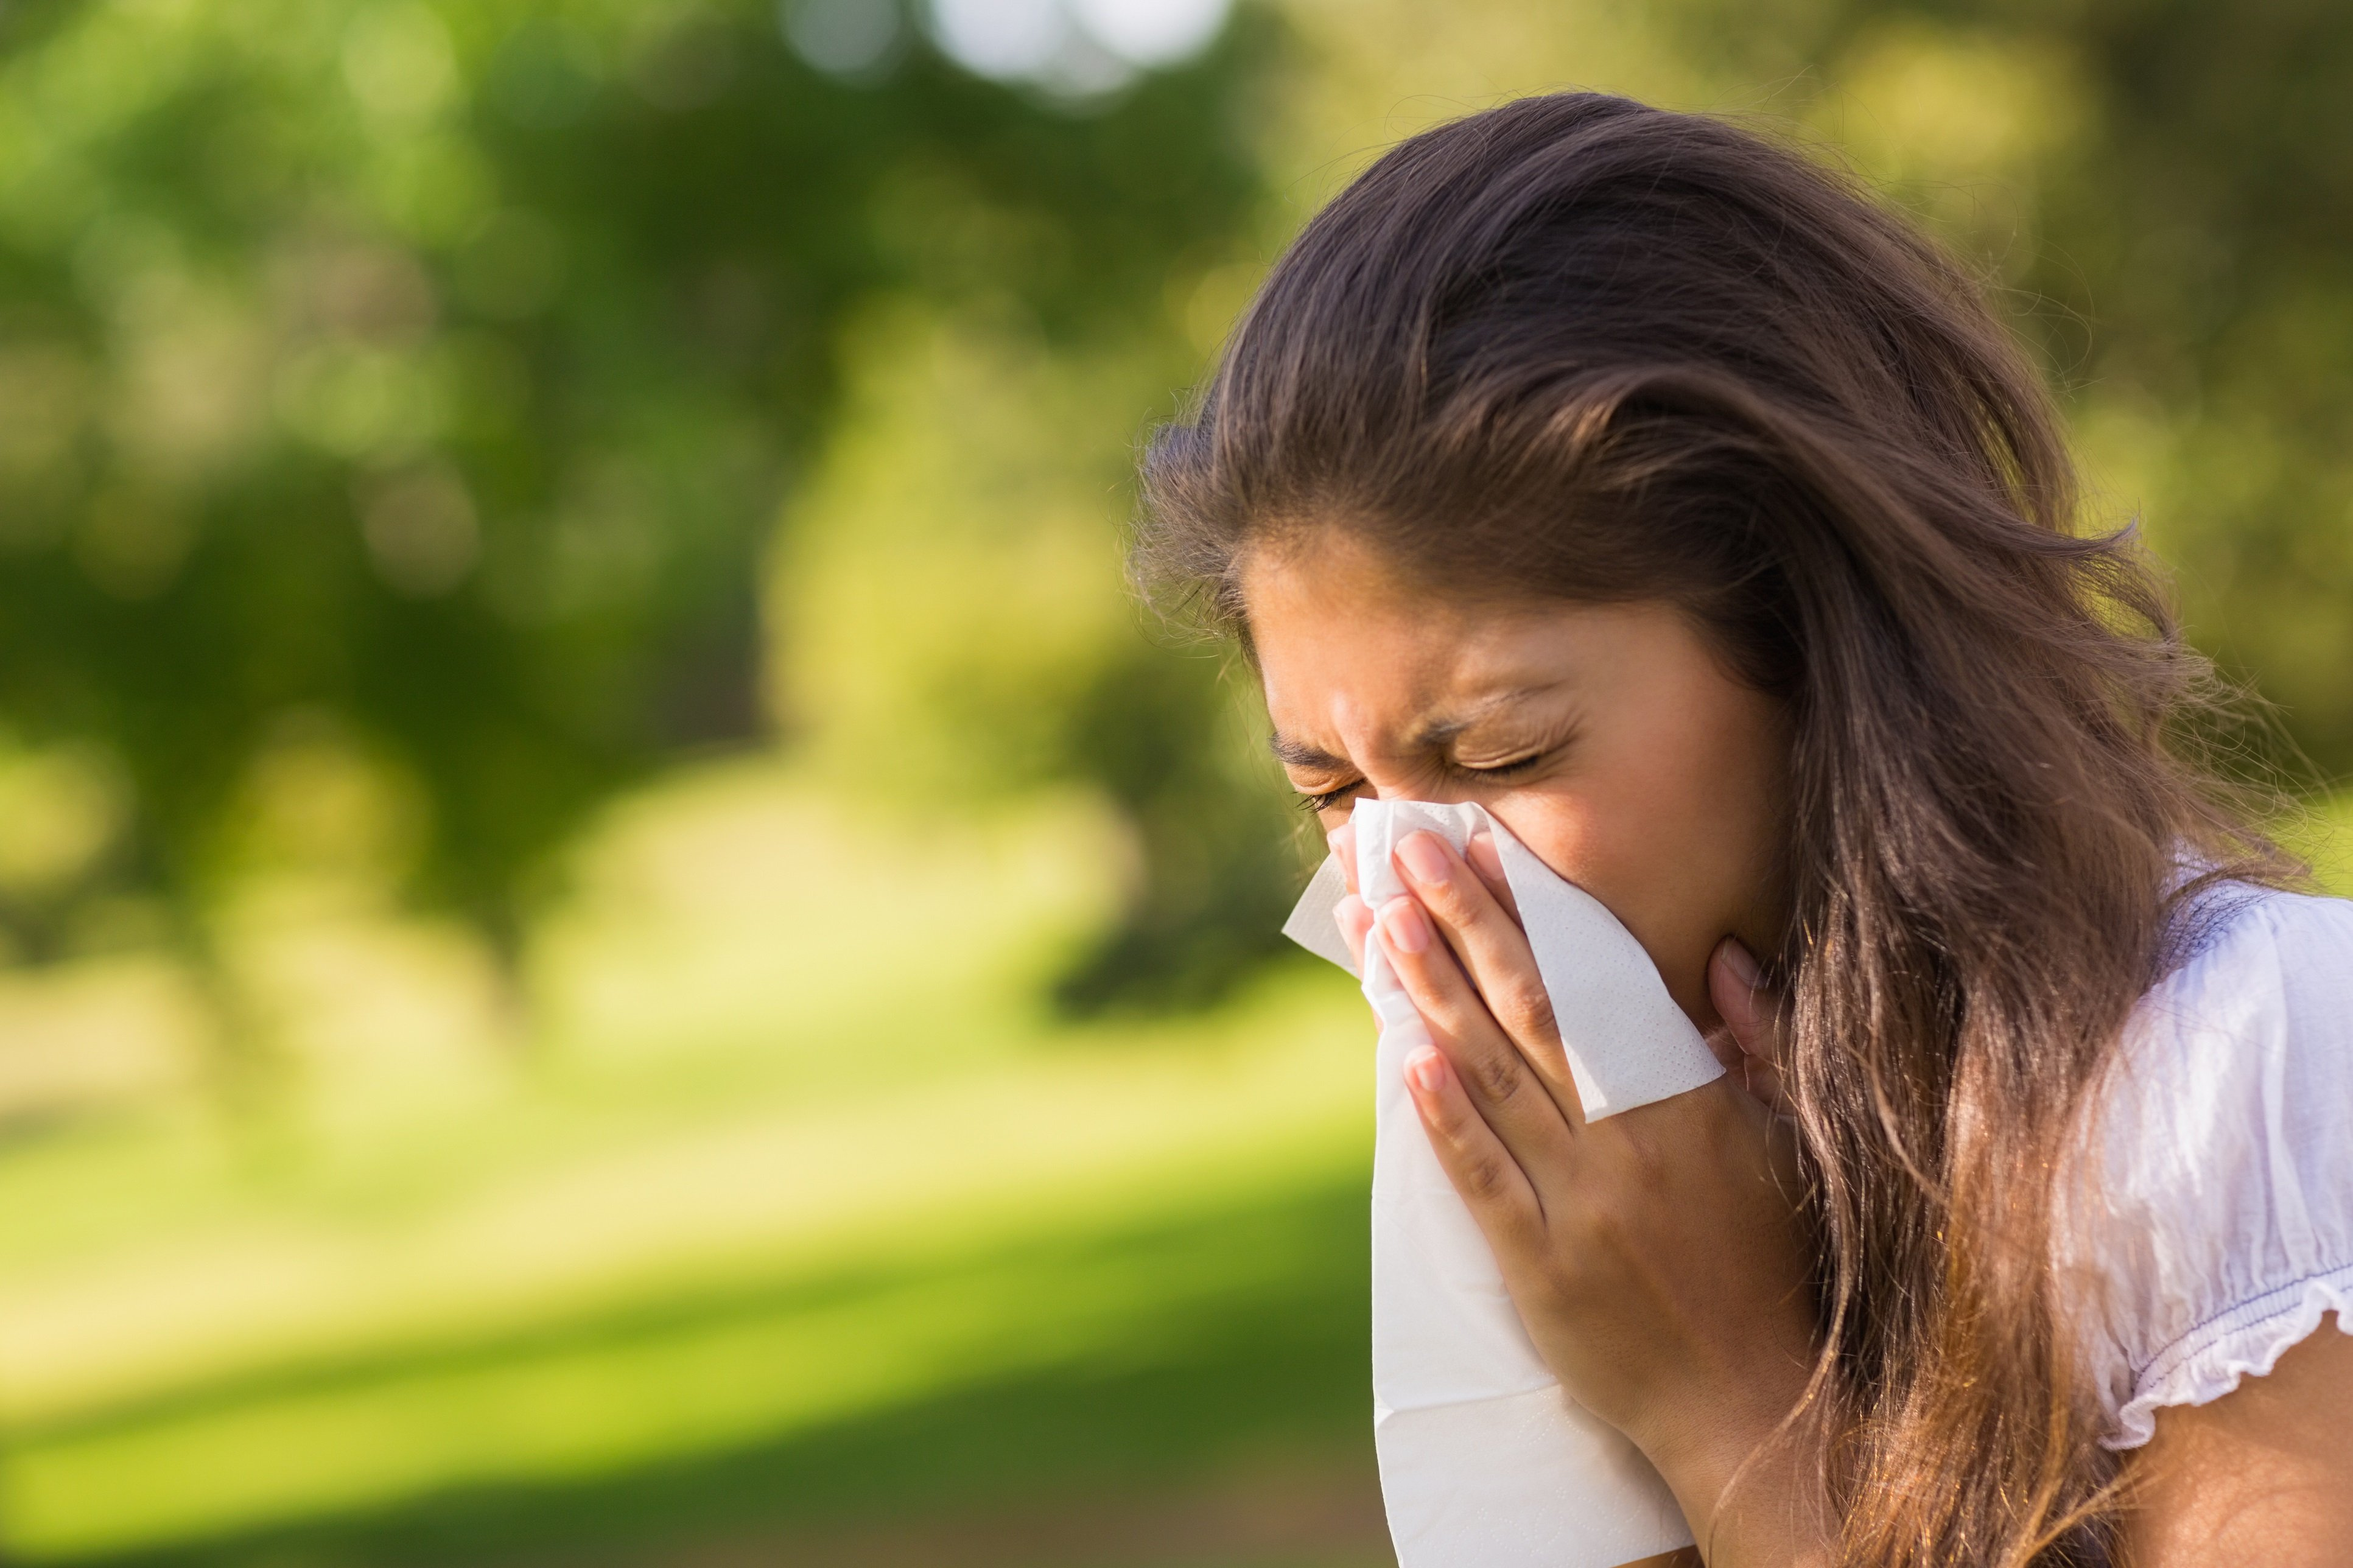 spring allergies; how to protect your eyes